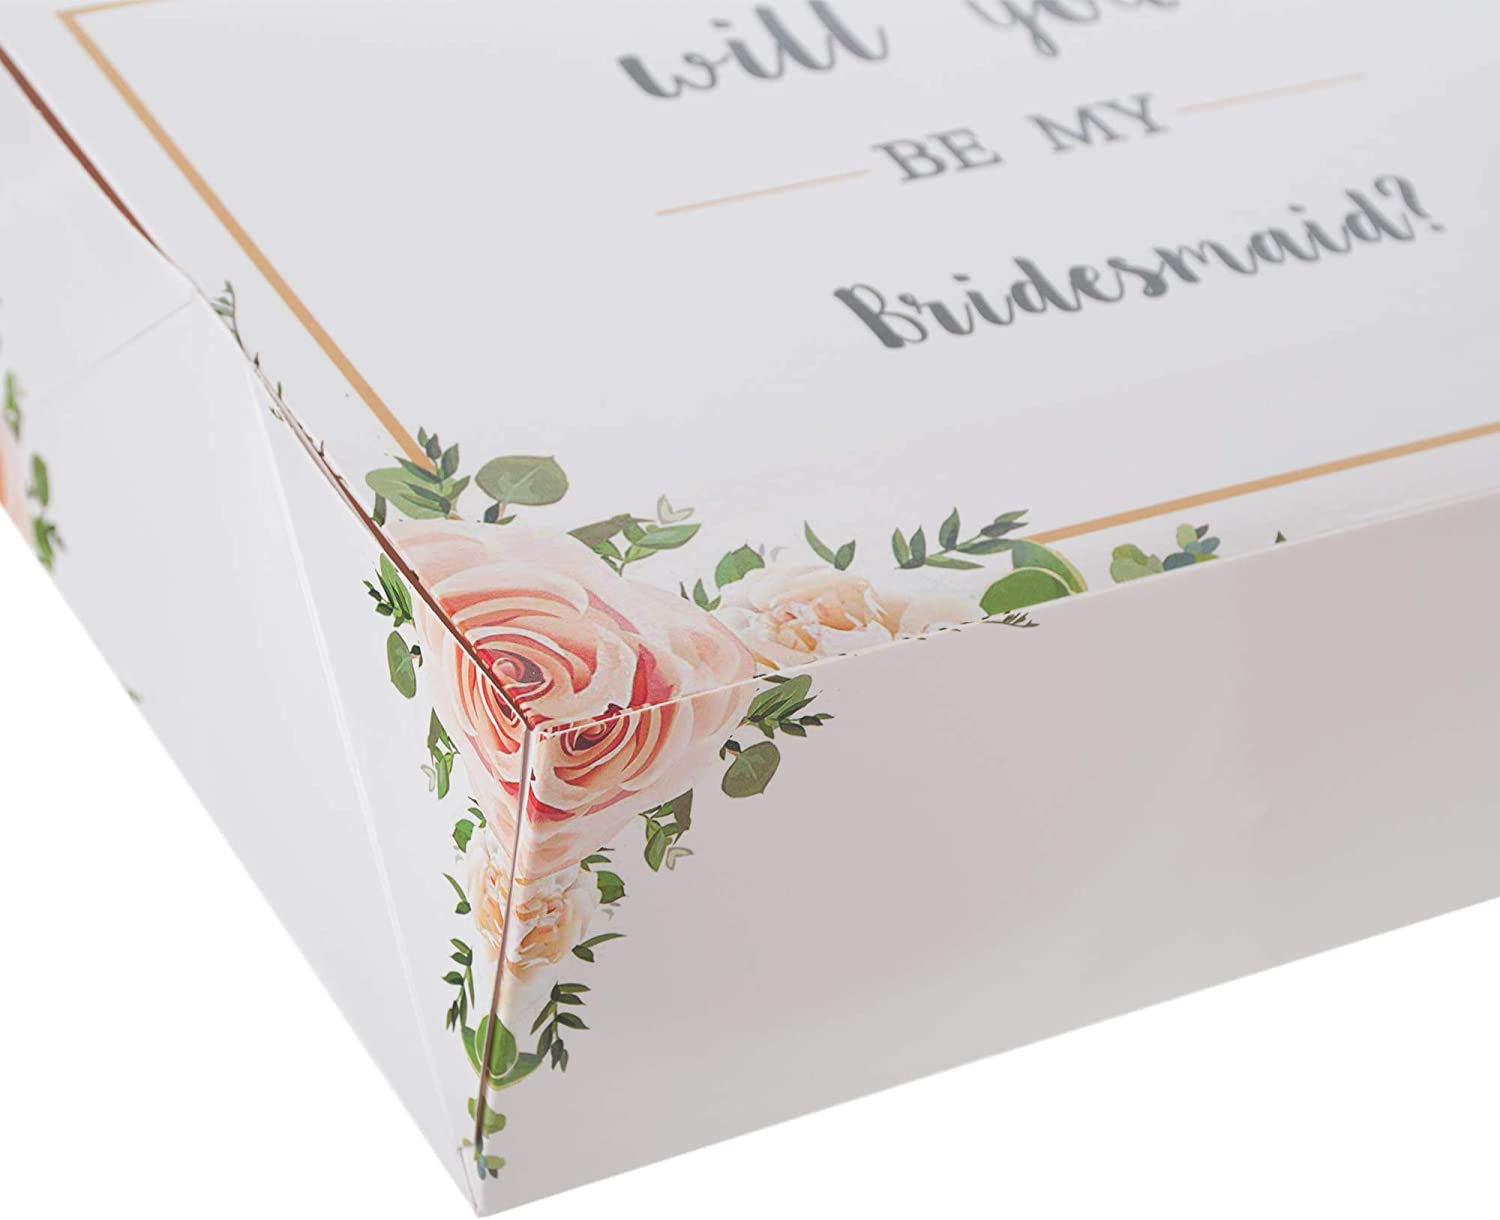 1 Maid of Honor Proposal Box and 5 Will You be My Bridesmaid Boxes for Bridesmaid Gifts Bridesmaid Proposal Box Set of 6